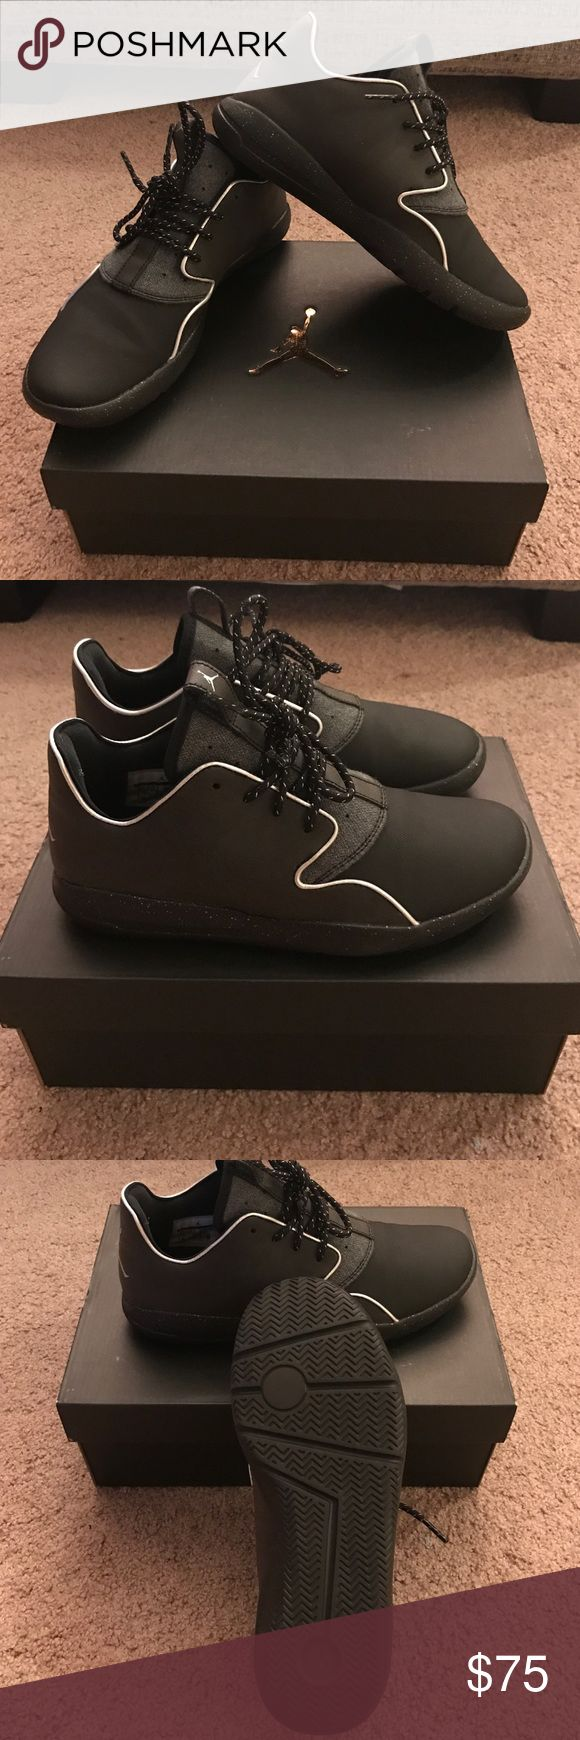 Jordan Eclipse Holiday BG Size 6Youth (7.5) Jordan Eclipse Holiday BG Size 6 youth. If you wear a women's 7.5, you would wear a youth 6. Youth sizes run as large as a 7, so anything up to an 8.5 falls within the women's/kid's overlap. I wear a size 7.5 and these fit me perfectly. Only worn once! I'm sad to part with these, but I'm trying to make room for other items. Originally purchased for $95.00 Jordan Shoes Athletic Shoes